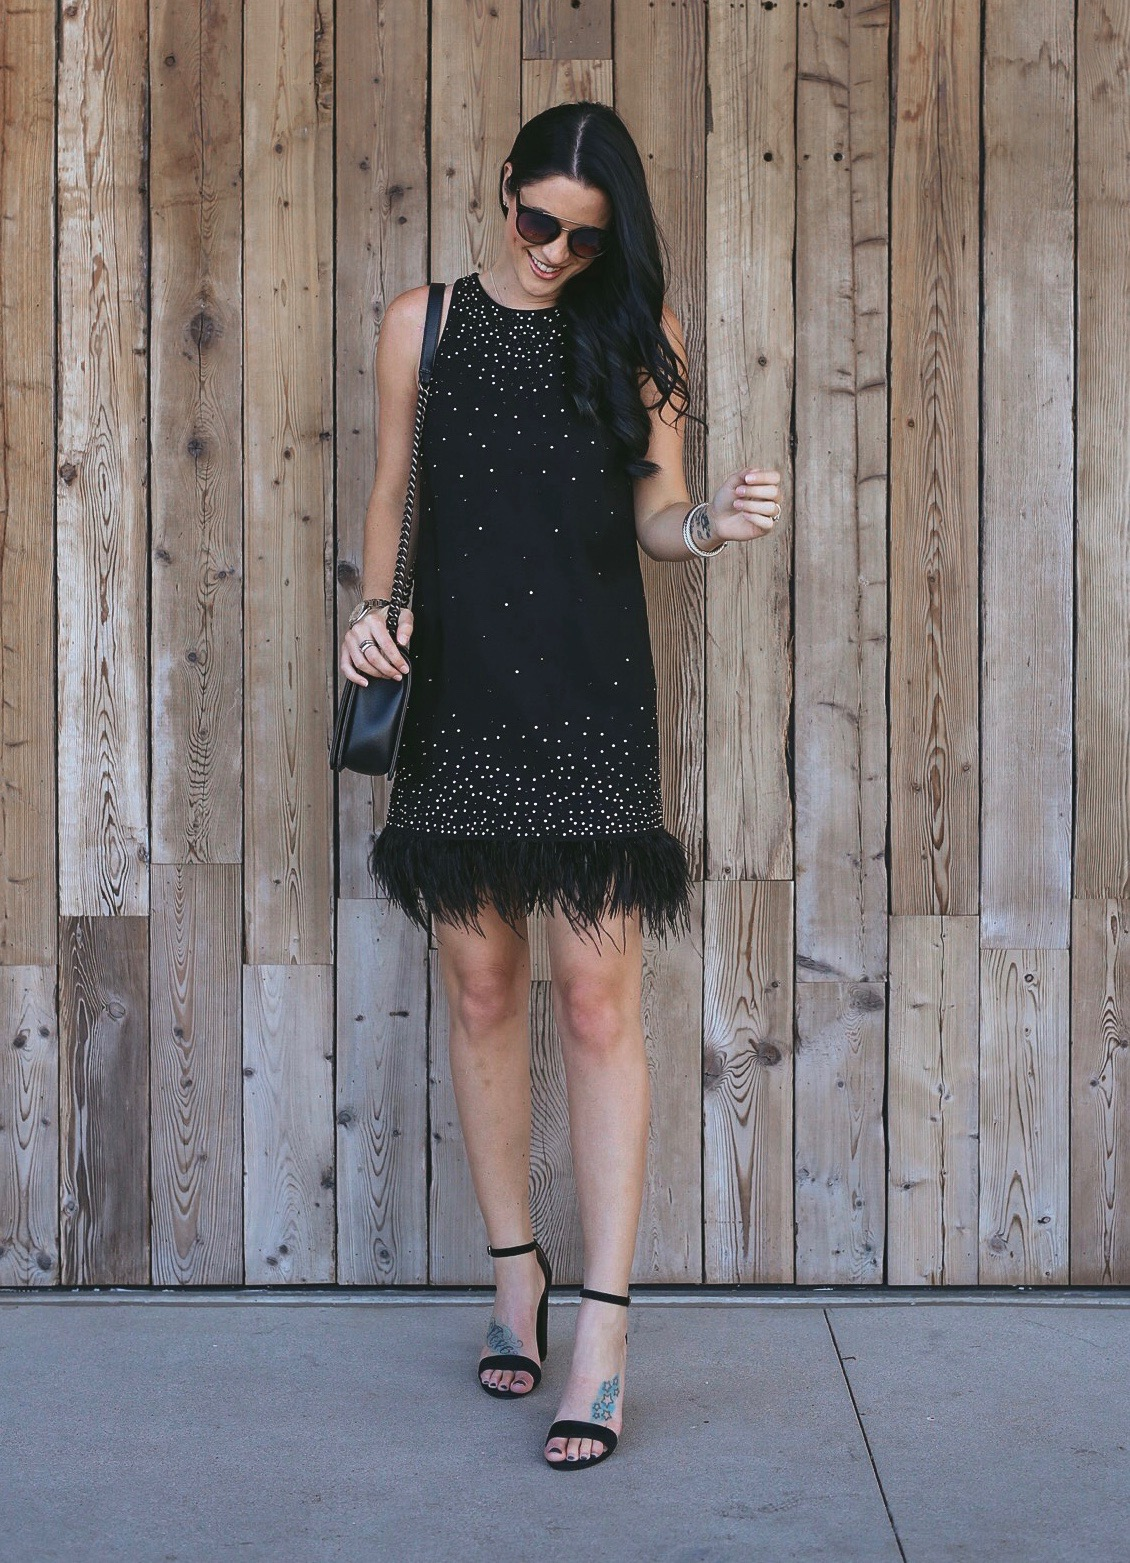 12 Affordable Little Black Dresses | little black dress style | classy little black dress | classic little black dress | LBD style | classic LBD | LBD outfit || Dressed to Kill #lbd #littleblackdress #affordableLBD